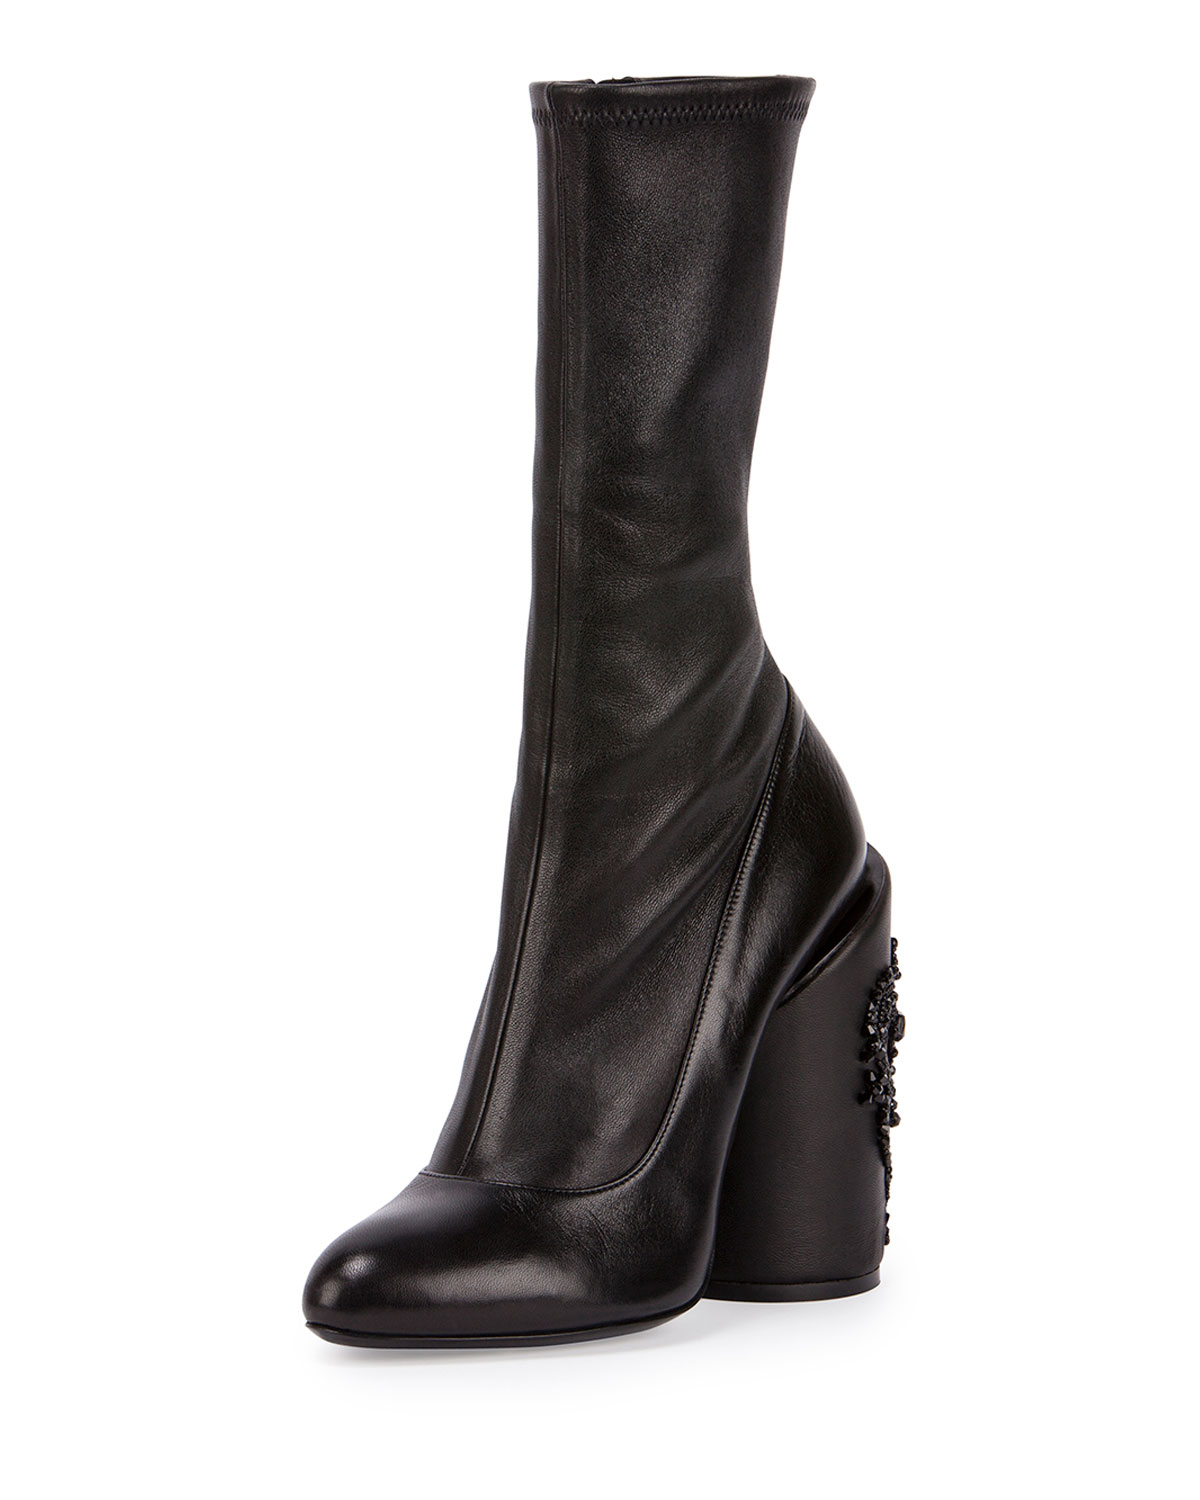 dcfc78c9f251 Givenchy Leather Embroidered-Heel Show Boot